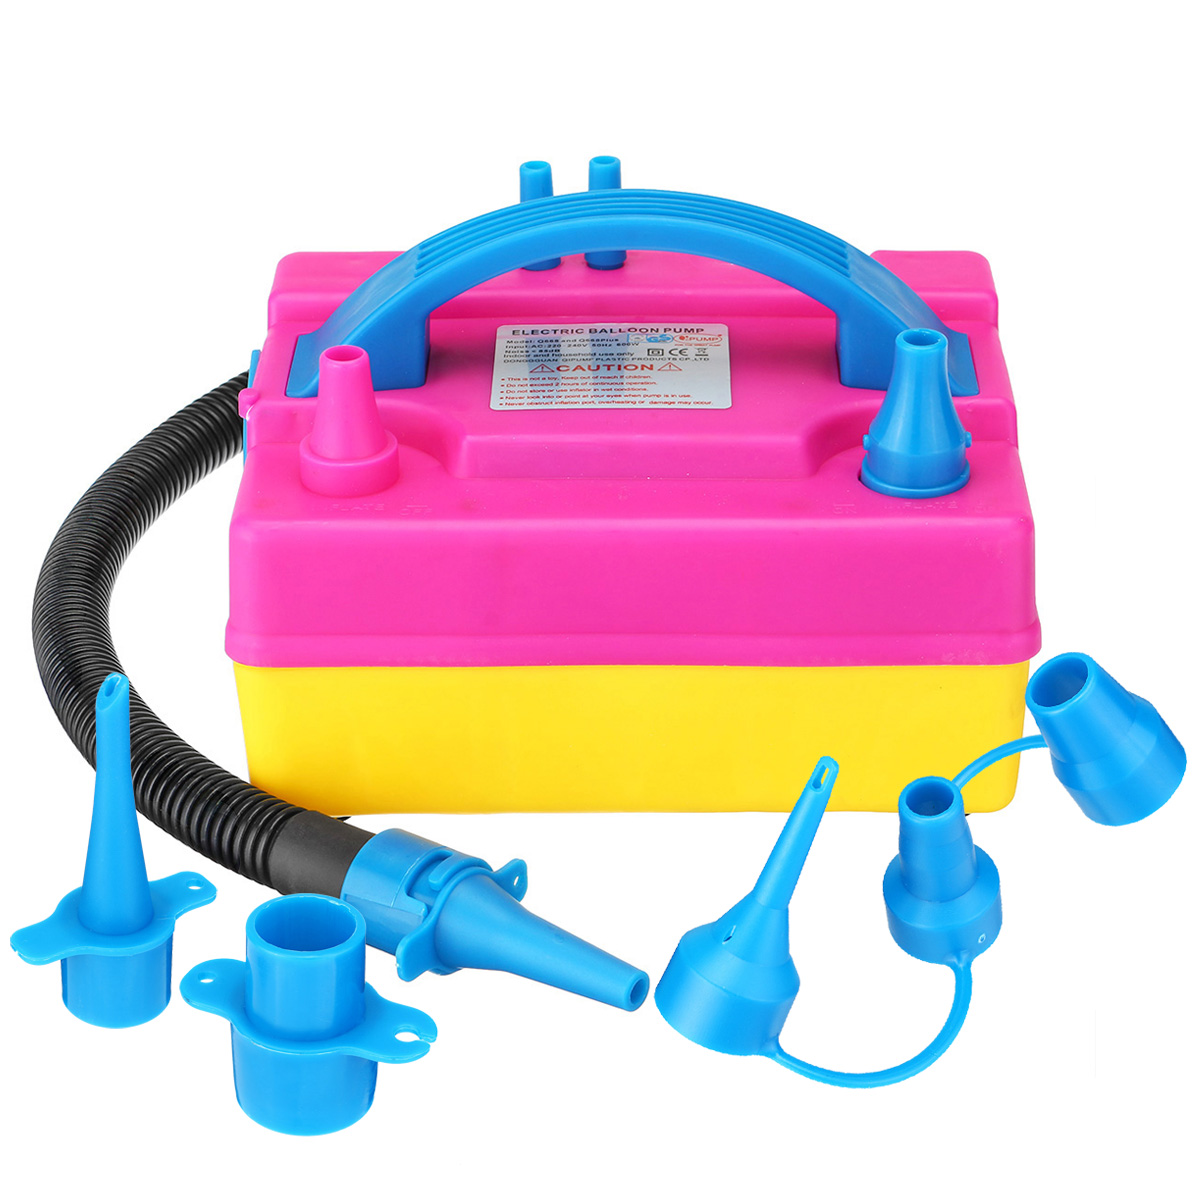 Portable Electric Double Hole Inflatable Balloons Pumps Air Balloons Inflator Air Blower Nozzles Kit Party Decoration 600W